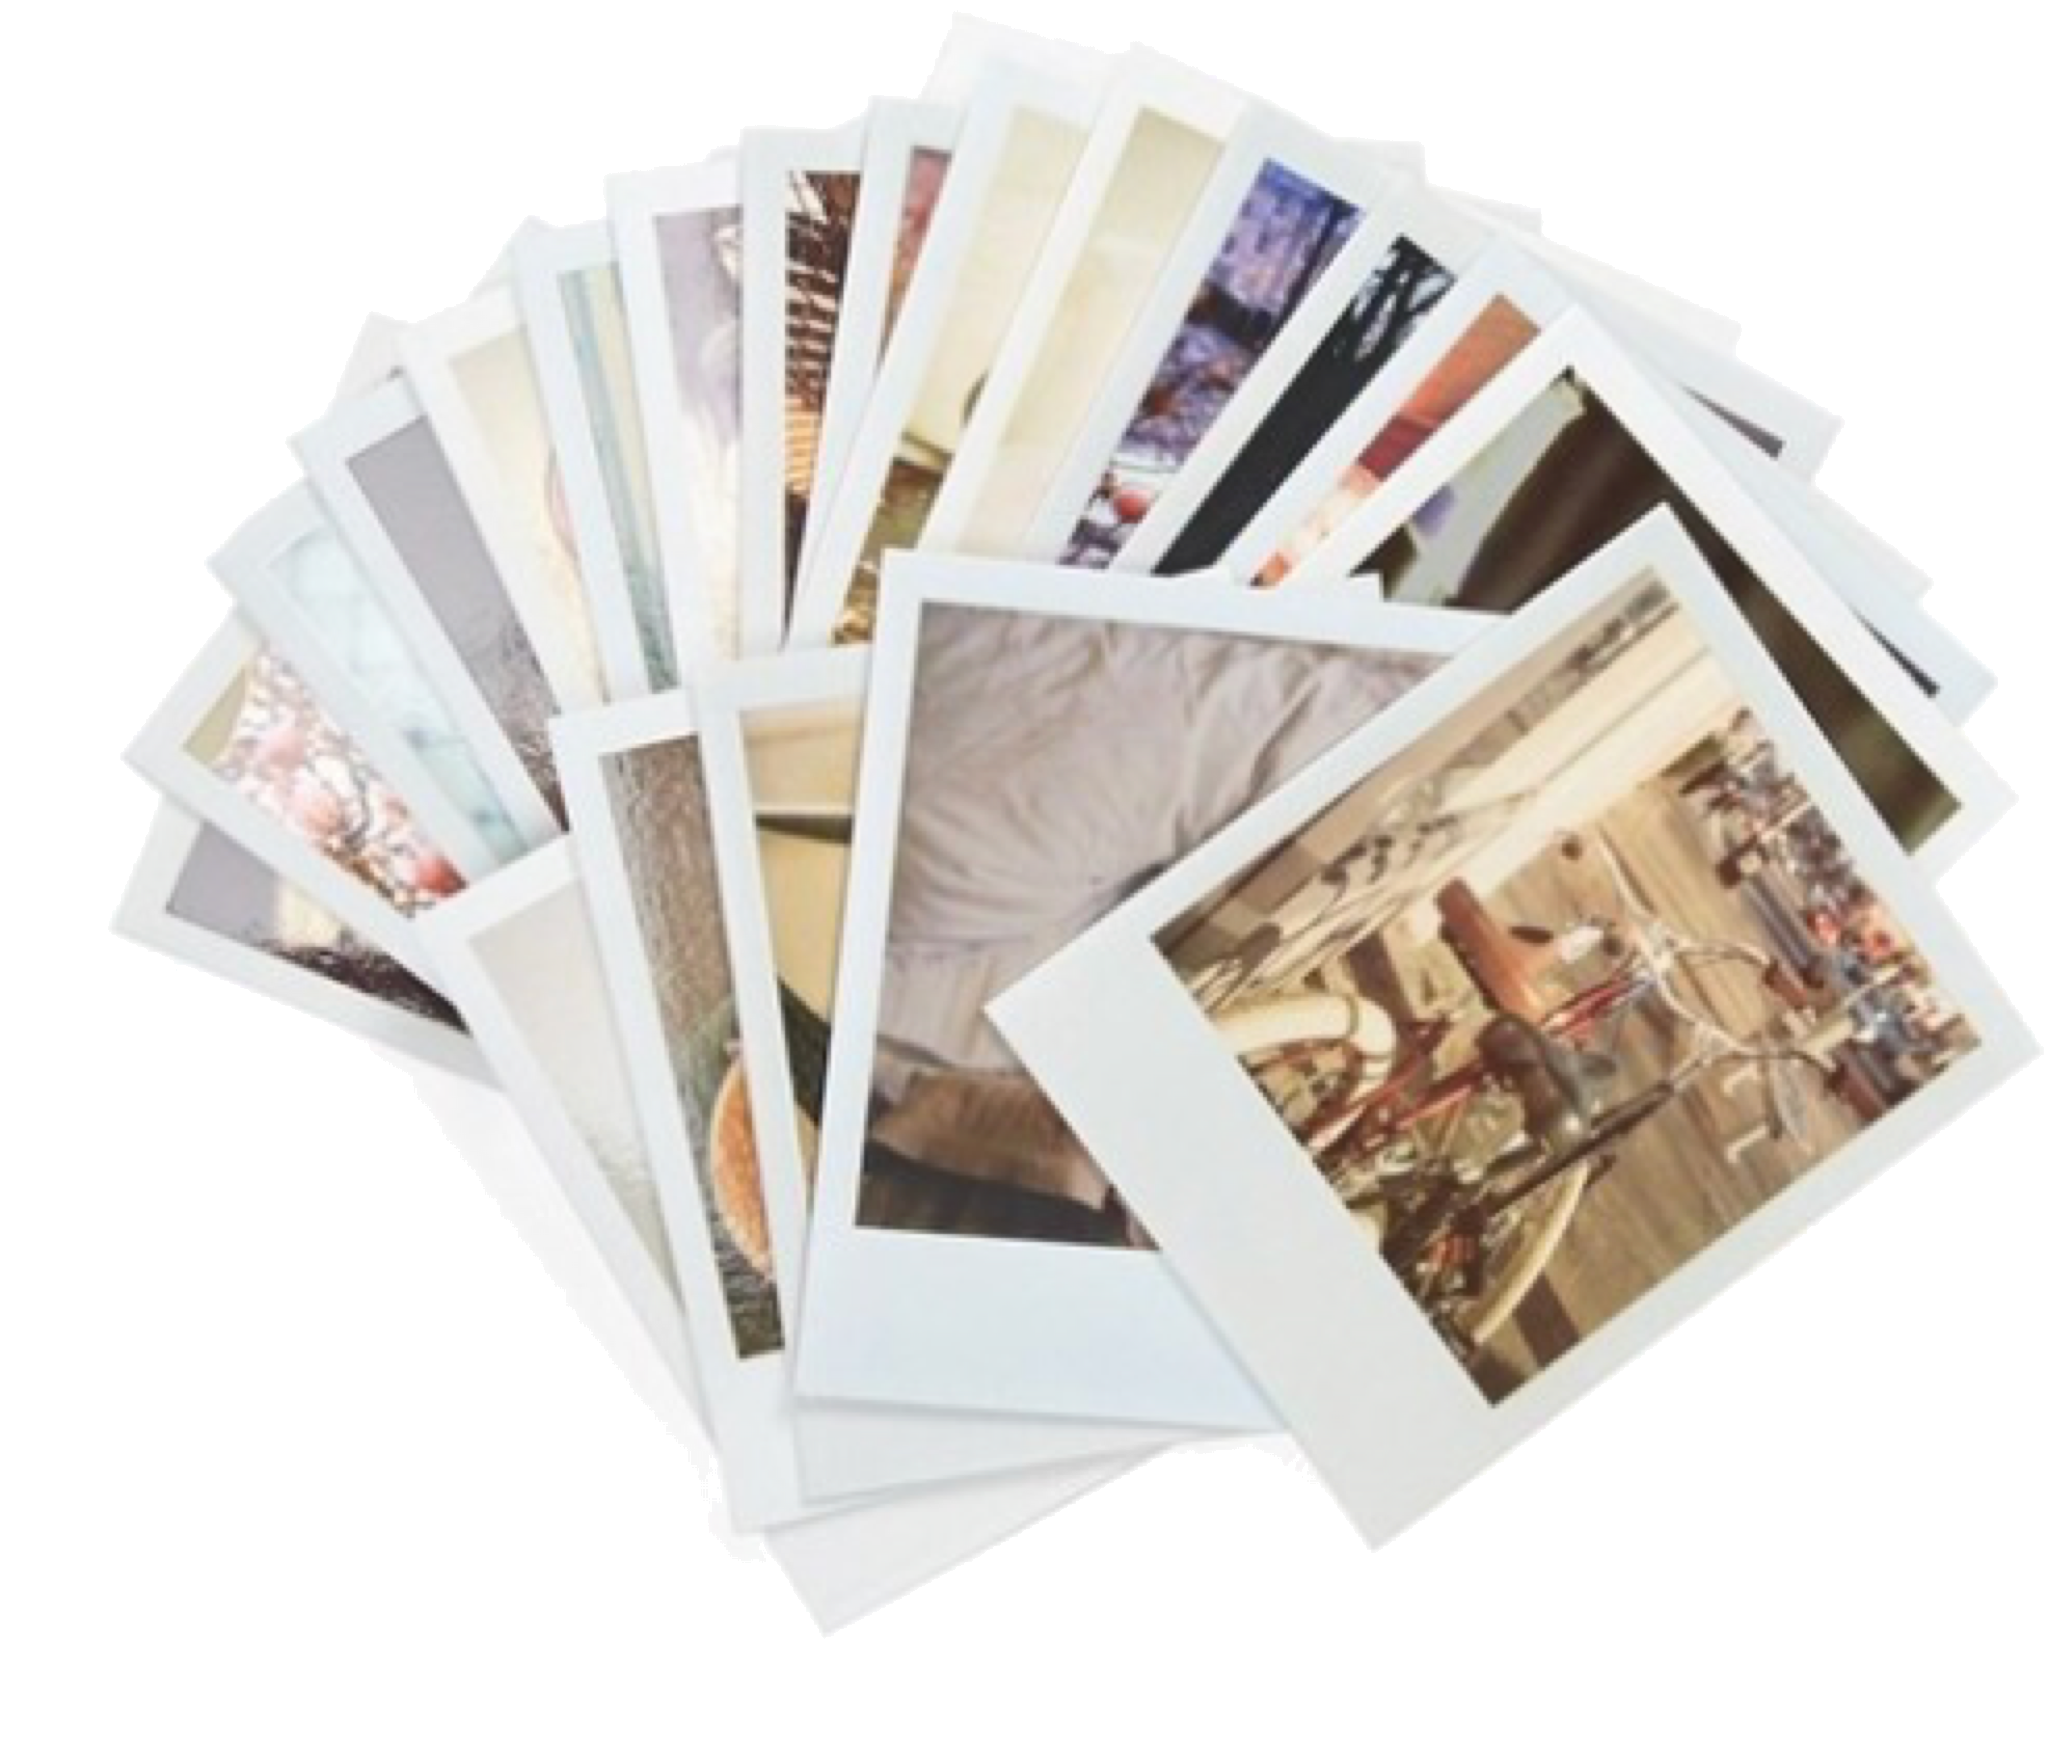 Pin By Georgia Youngblood On Pngs Note Cards Polaroid Pictures Chronicle Books